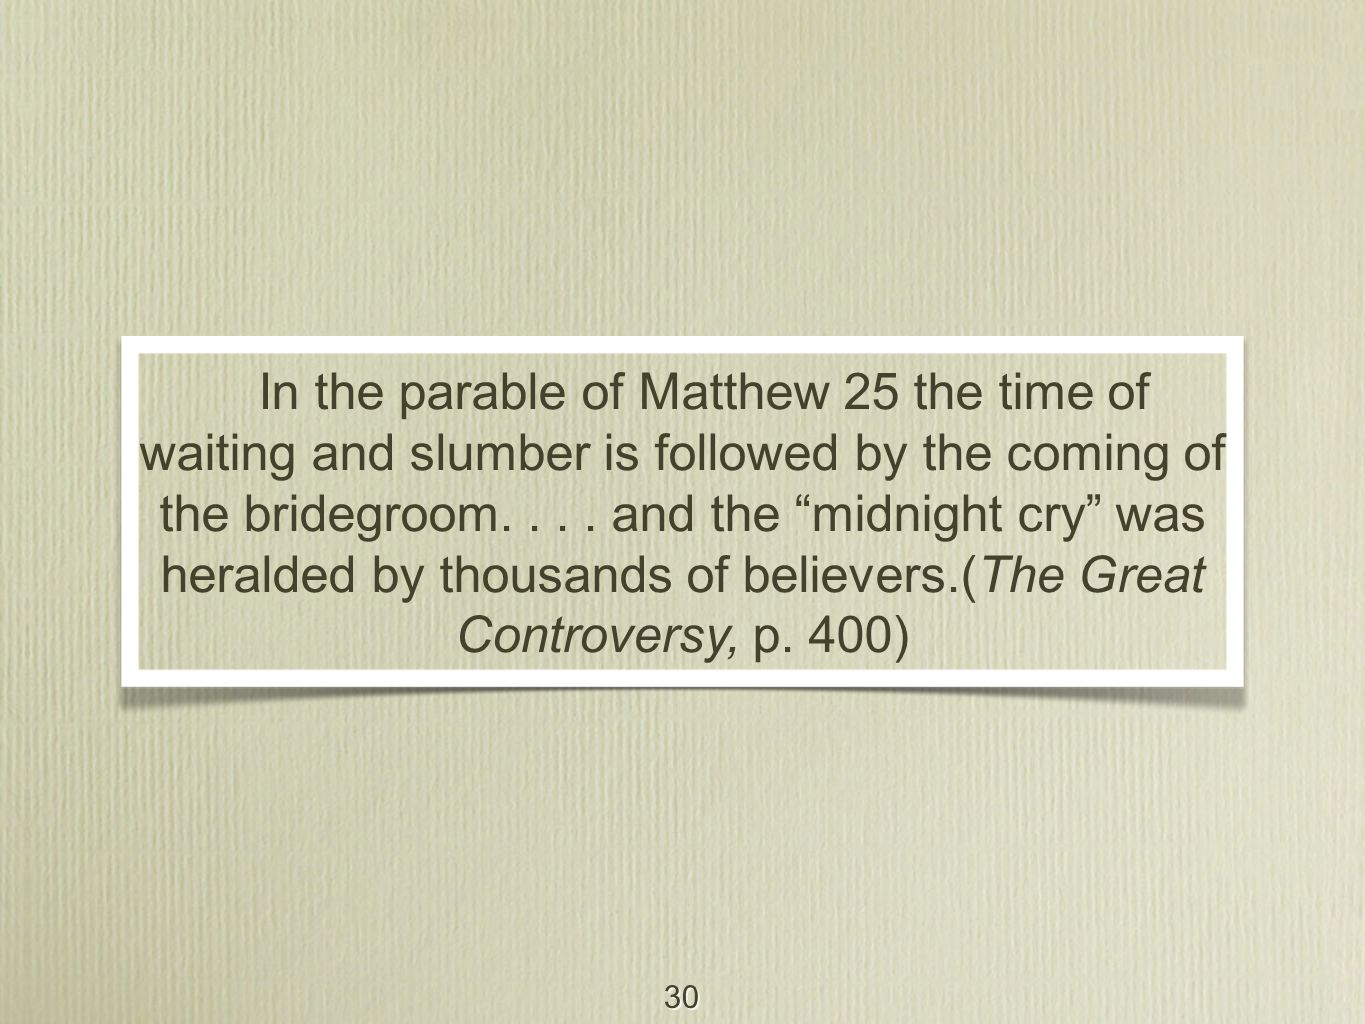 """30 In the parable of Matthew 25 the time of waiting and slumber is followed by the coming of the bridegroom.... and the """"midnight cry"""" was heralded by"""